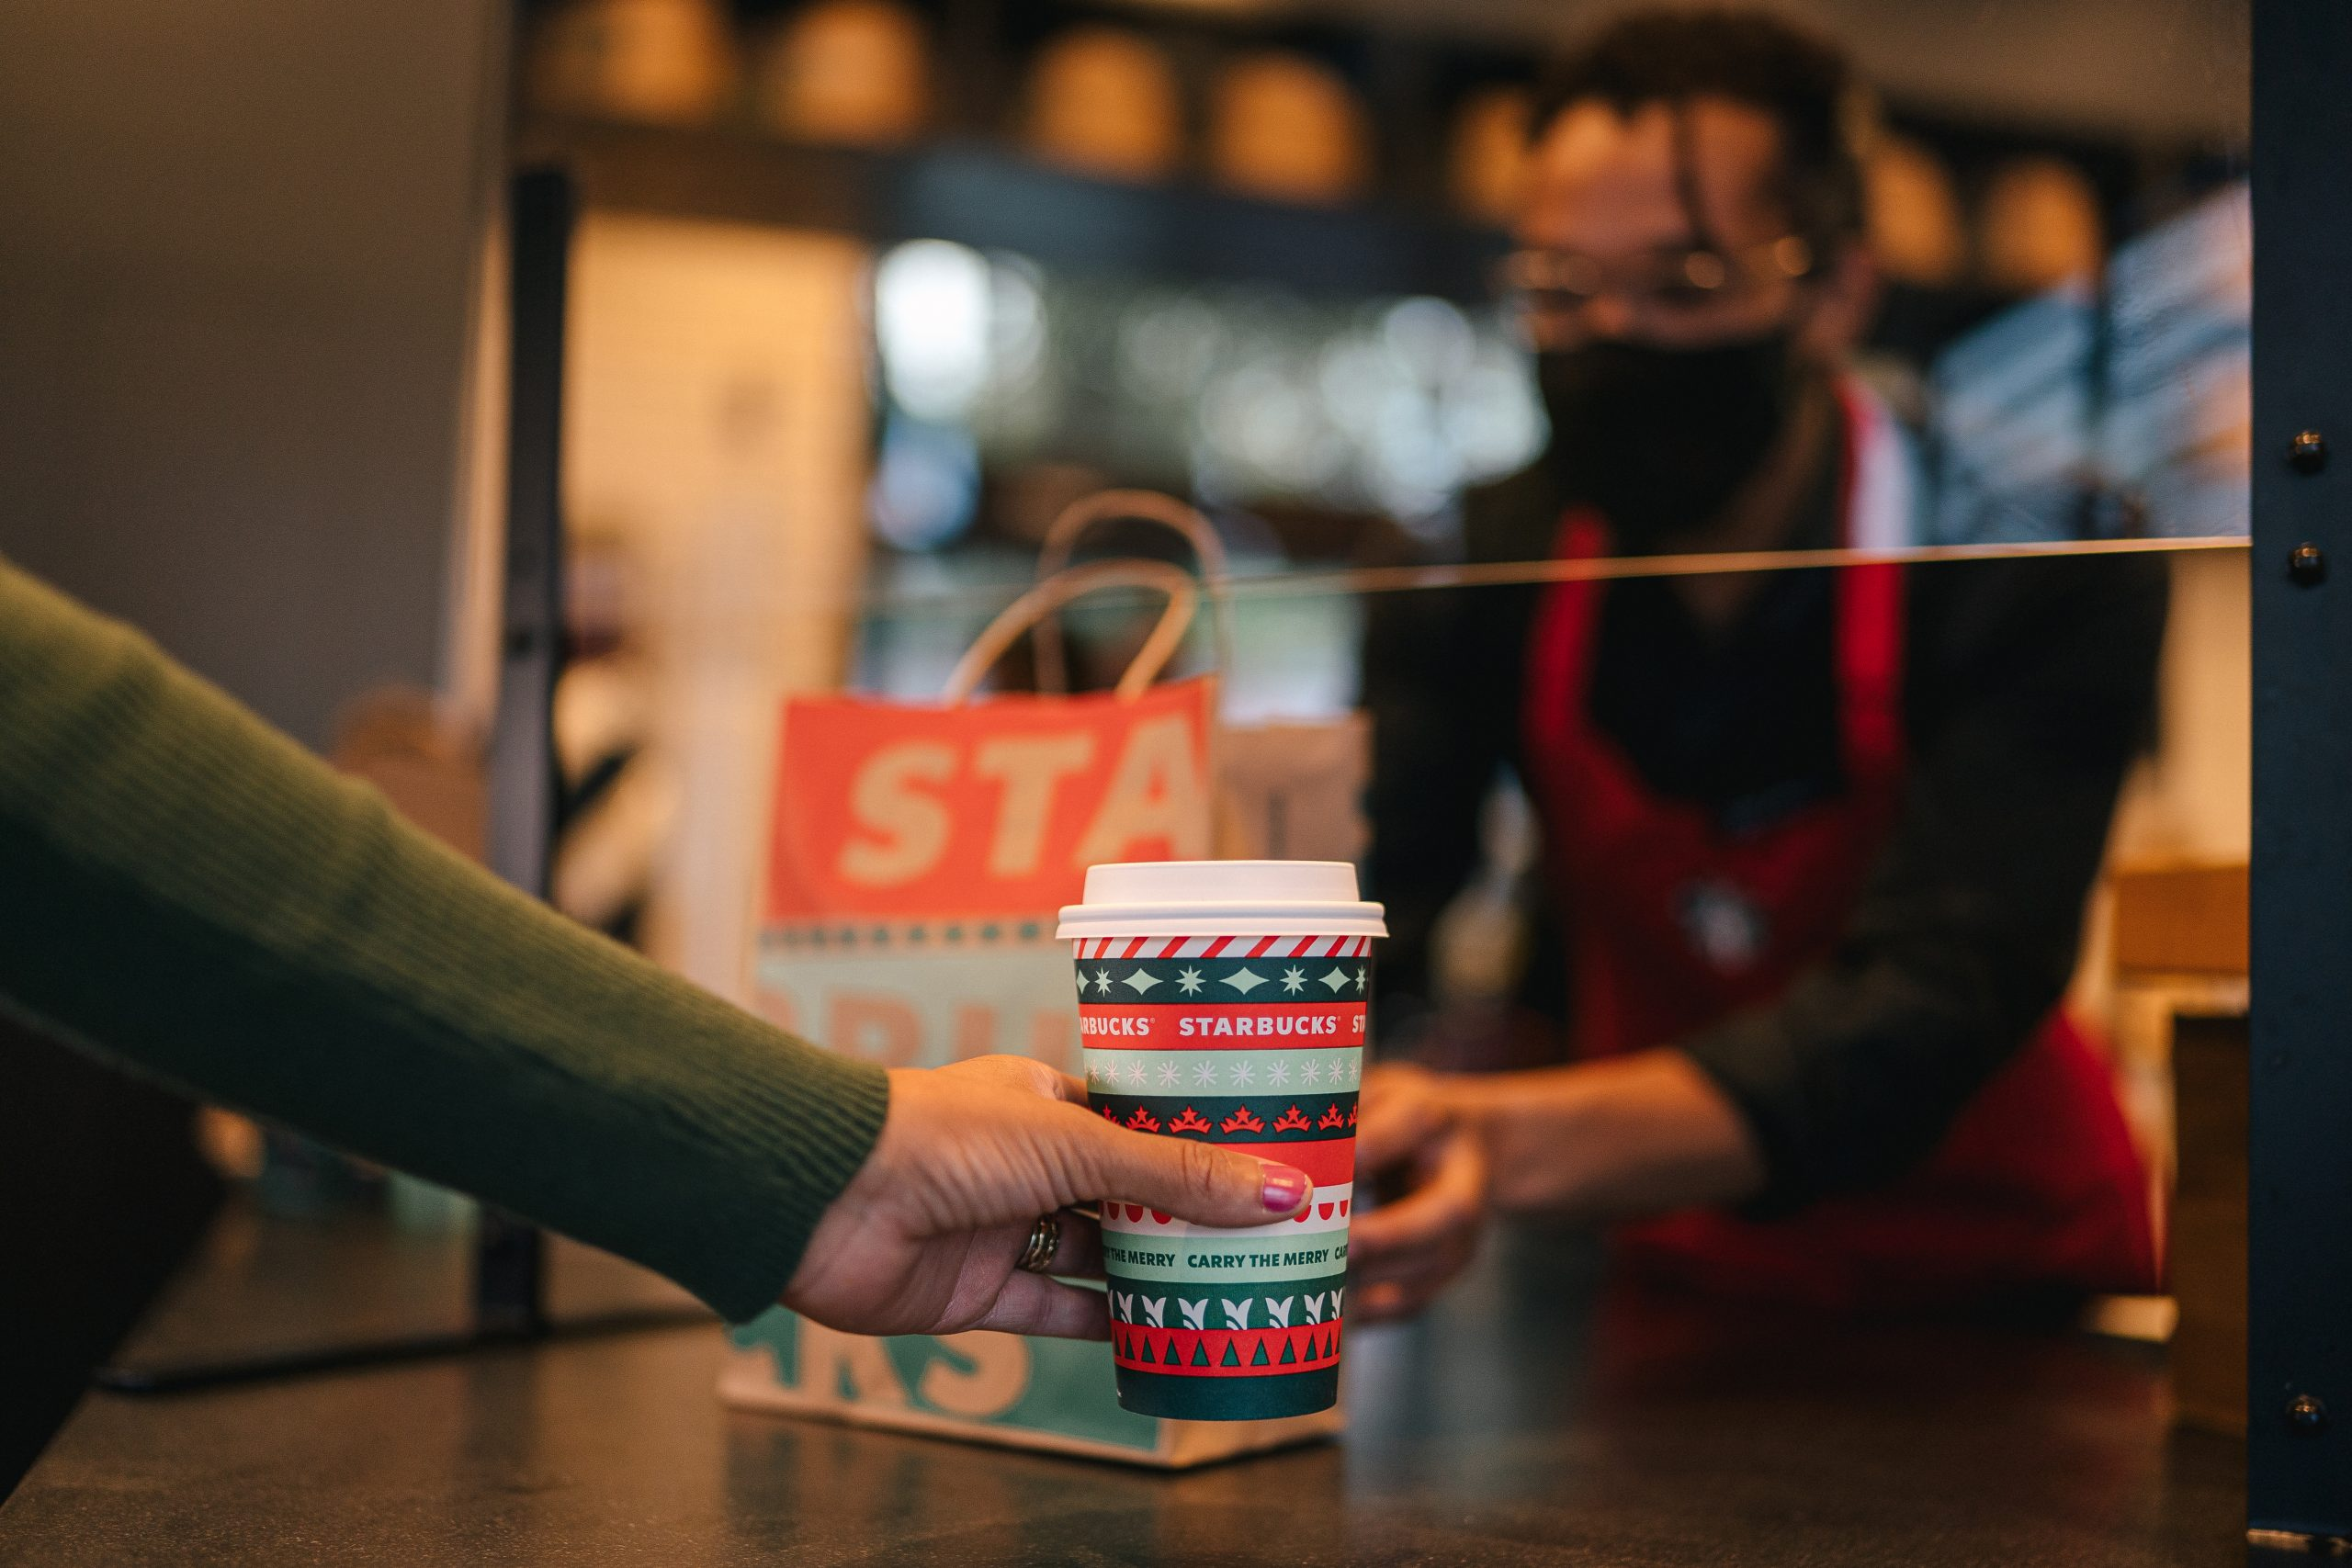 'Carry the Merry' and be the Kindness – with Starbucks